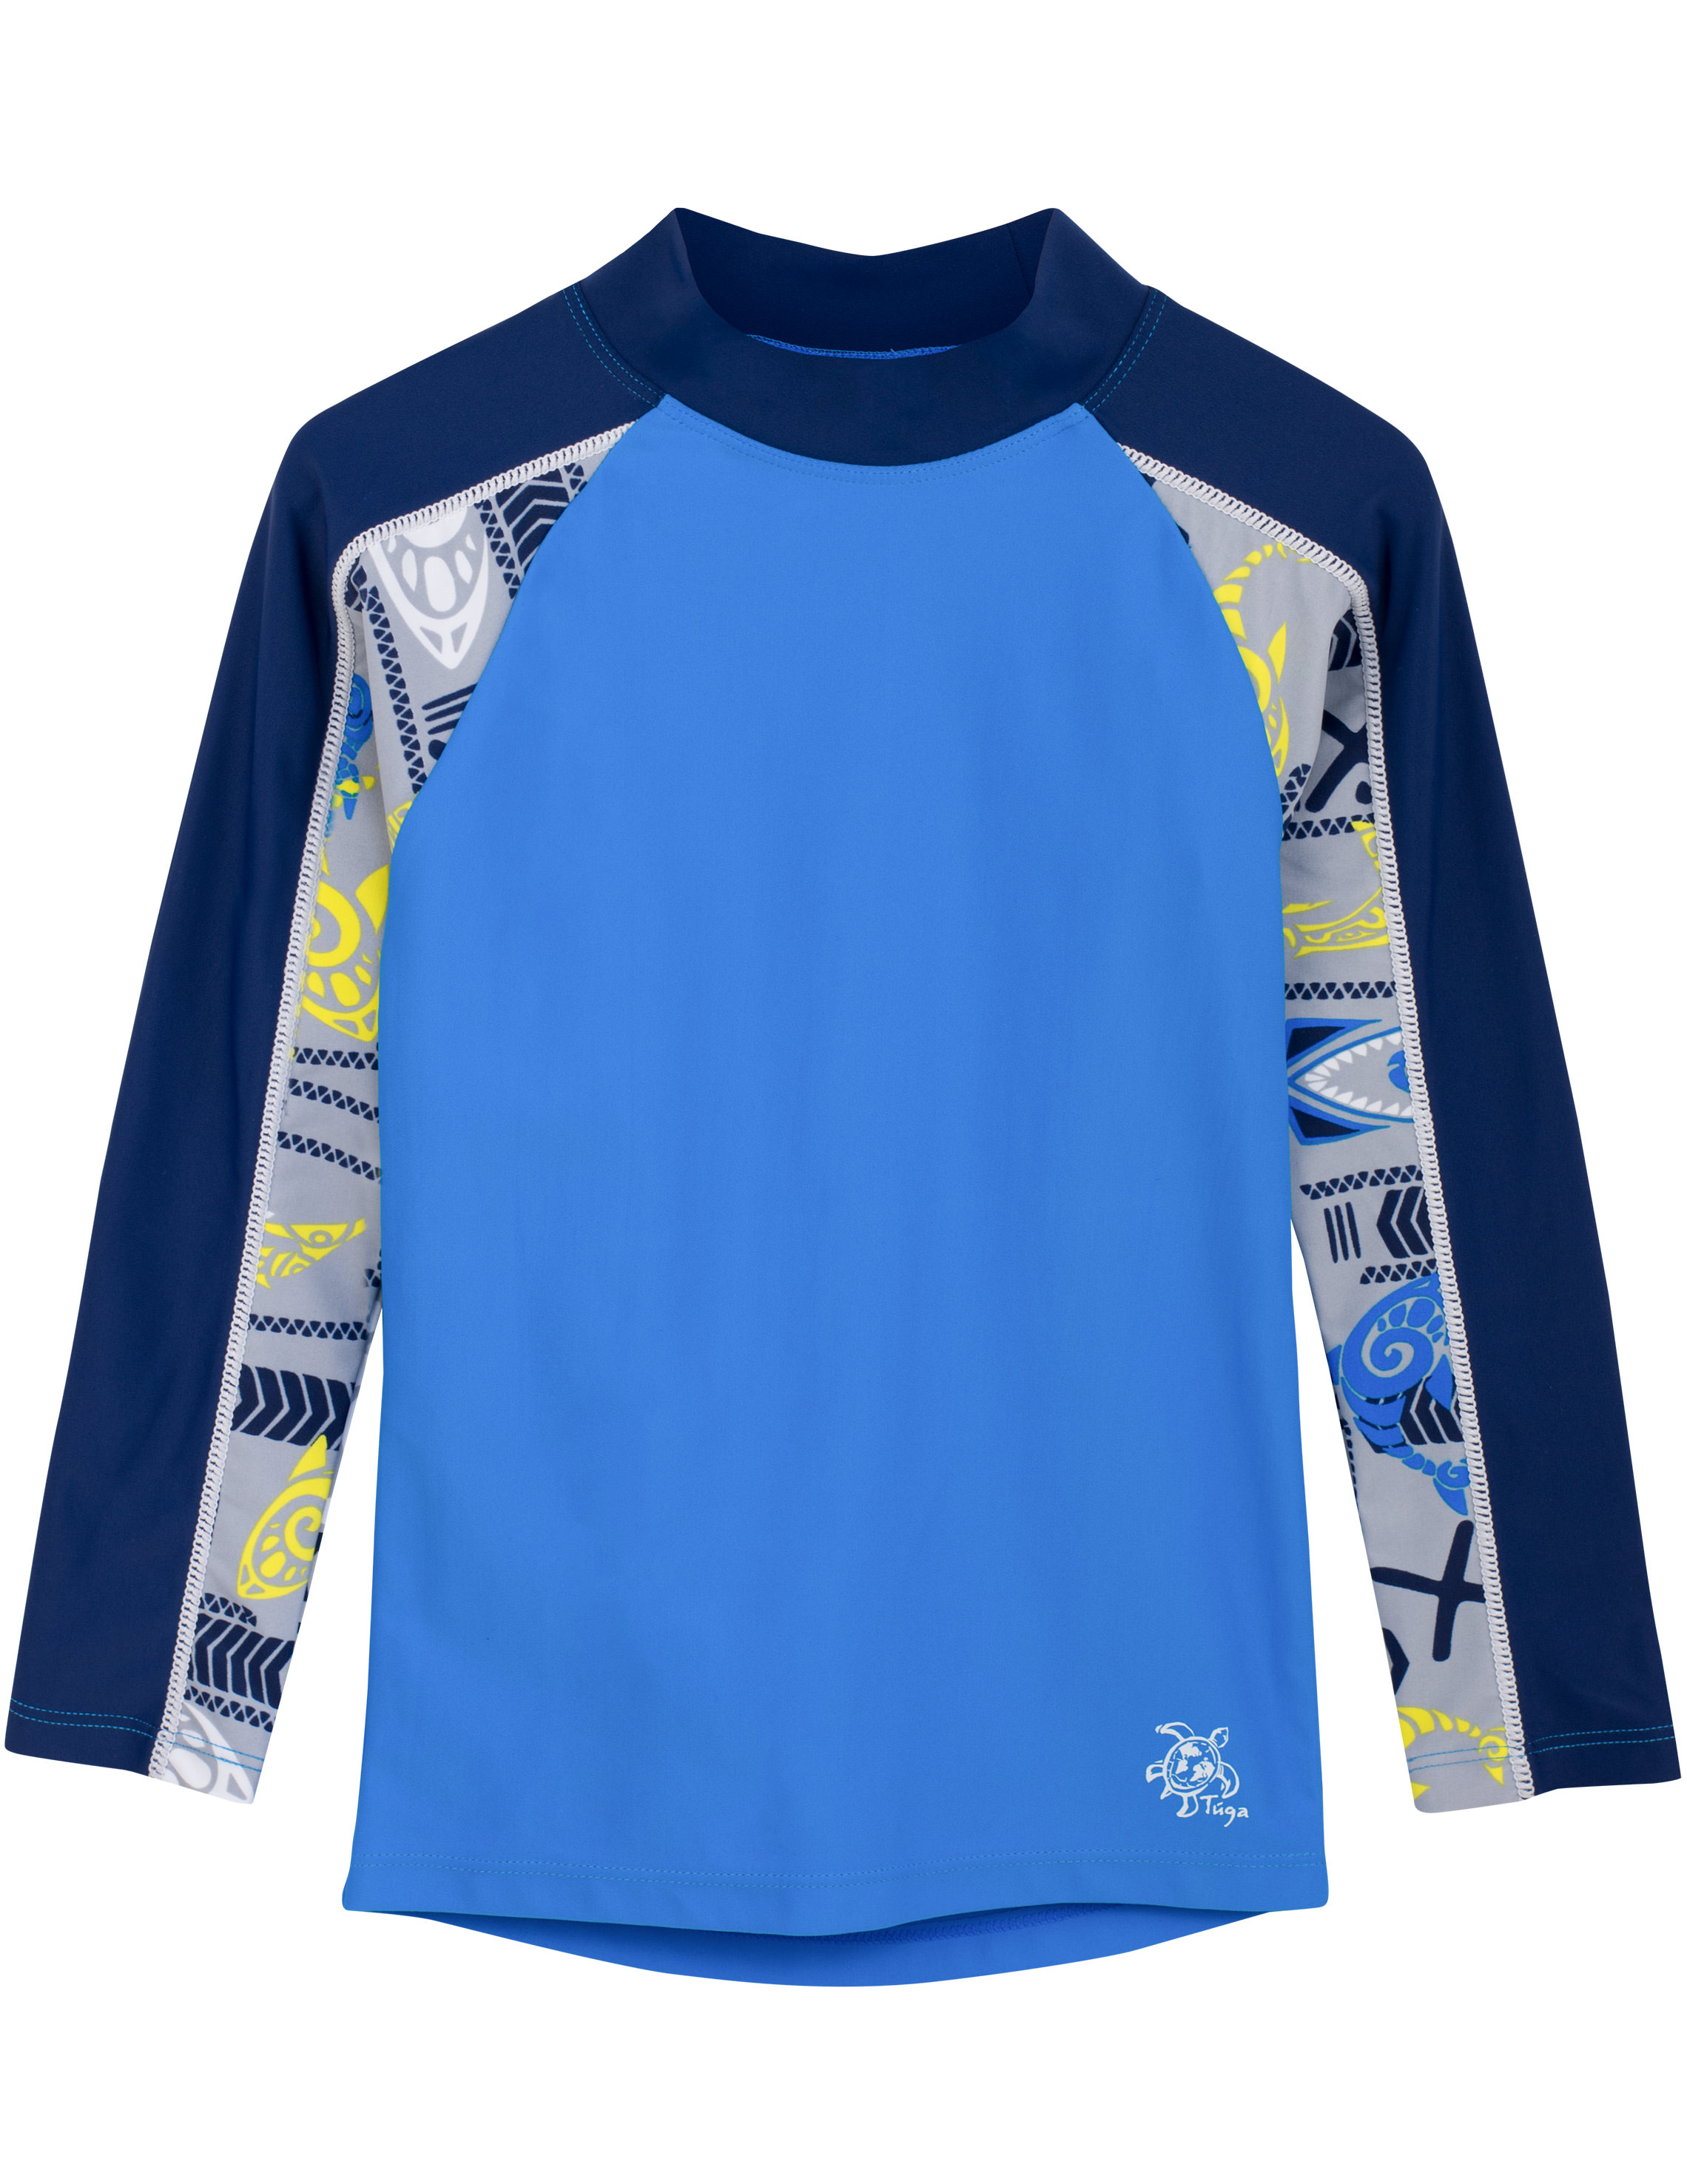 Tuga Kids Custom//Personalized Long Sleeve Rash Guard UPF 50 Sun Protection